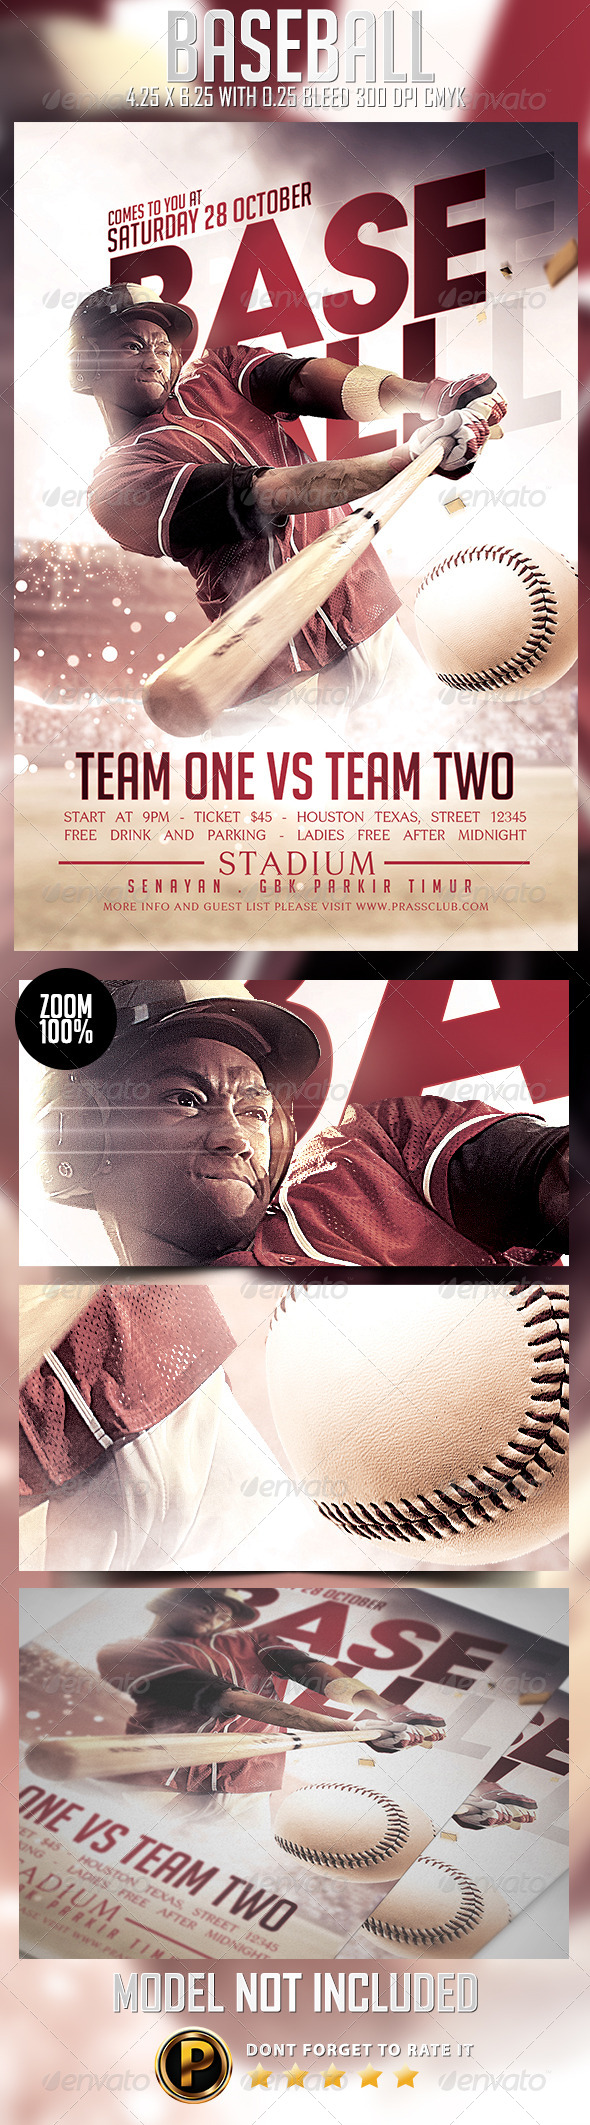 GraphicRiver Baseball Flyer Template 8659409